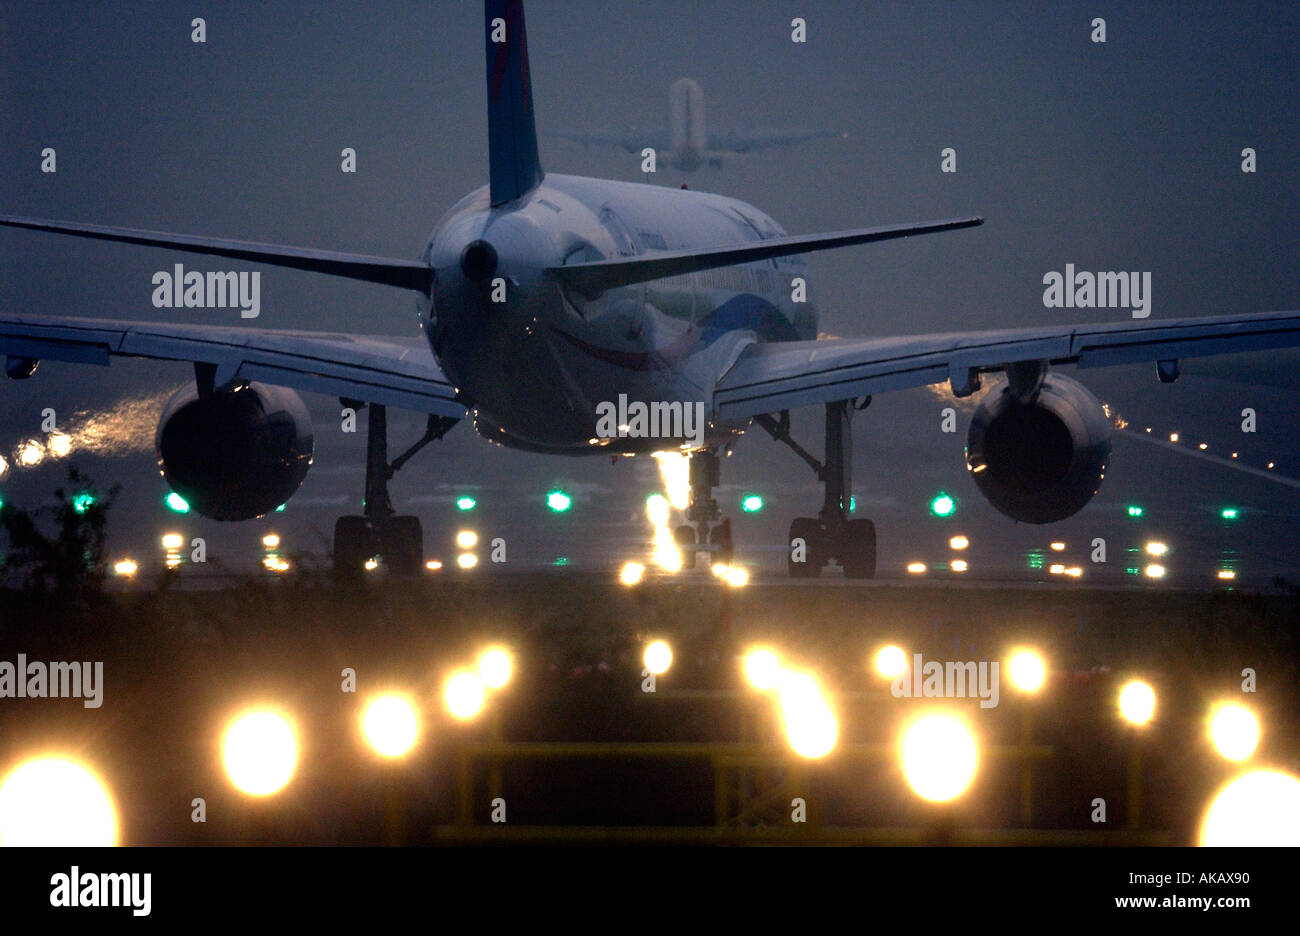 A First Choice plane prepares for takeoff from Gatwick at night moments after another jet leaves the runway - Stock Image